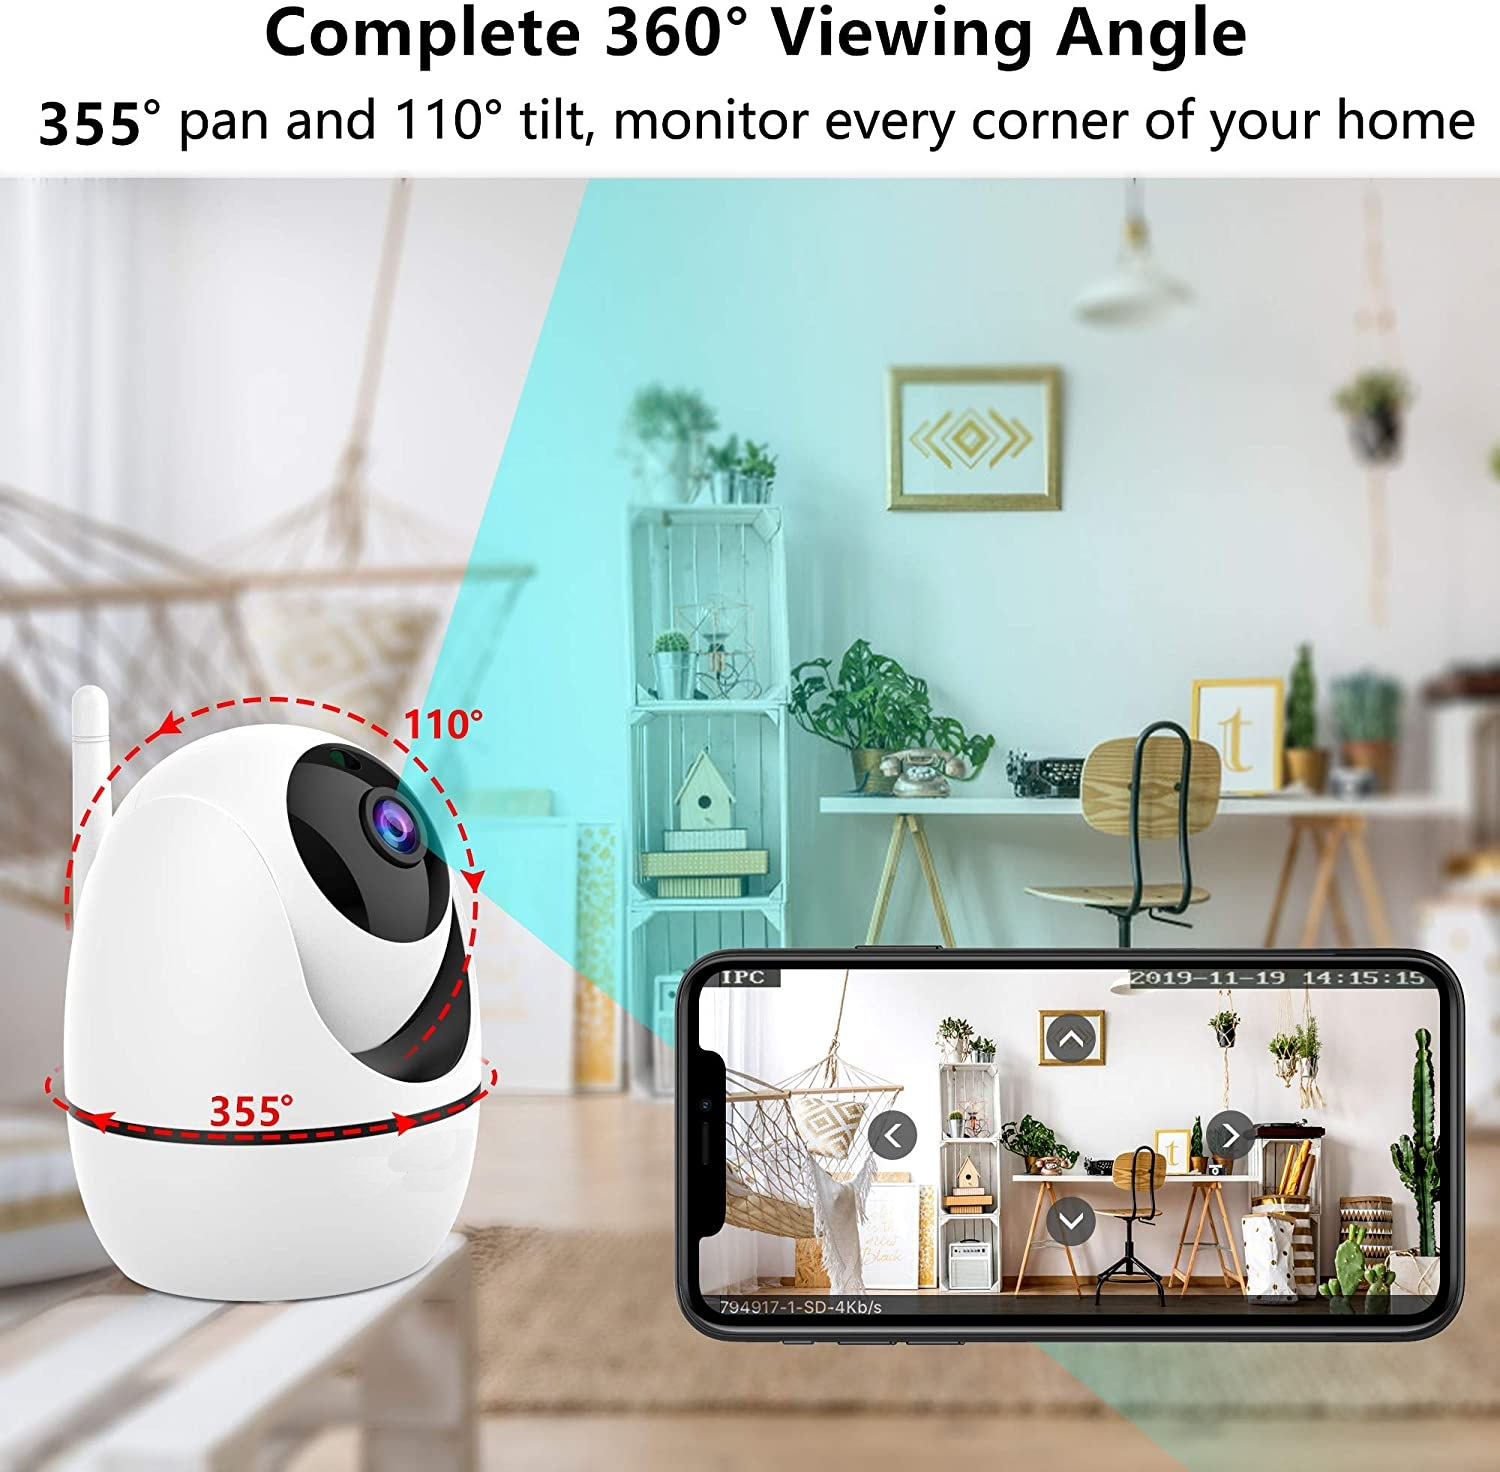 HOT two way audio night viision wifi cctv camera for sale with Motion Detection ycc365plus app